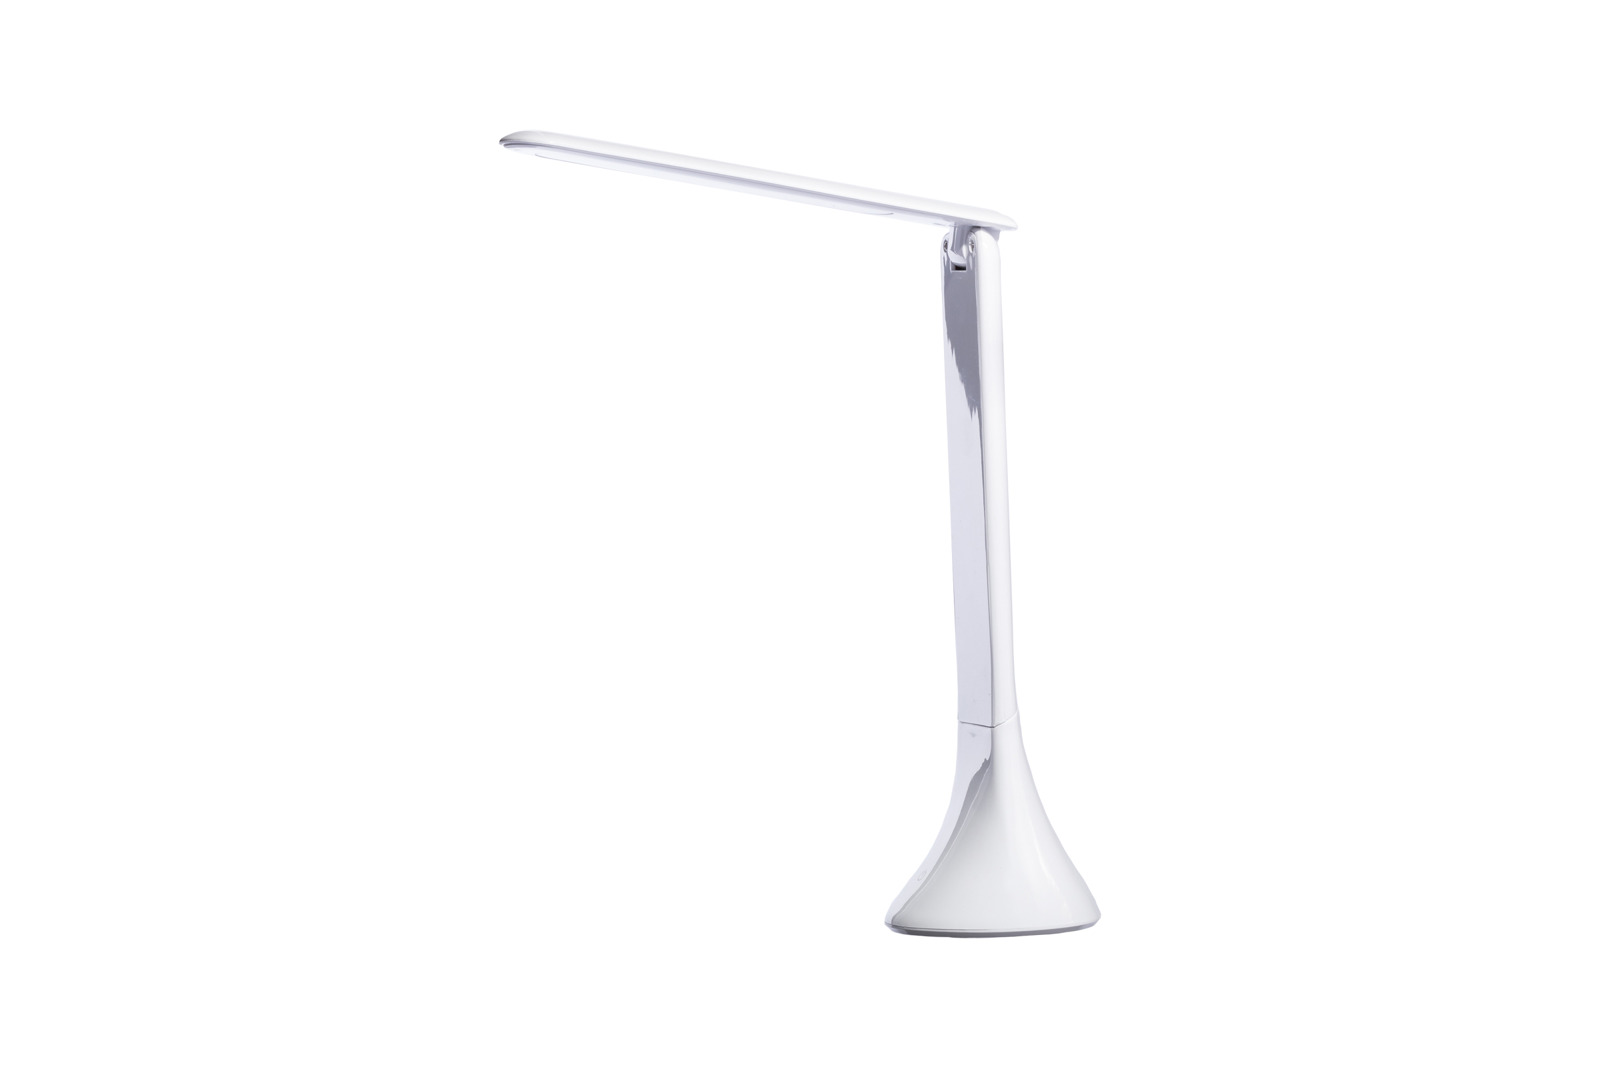 Foldable Touch Desk Lamp 18 LED